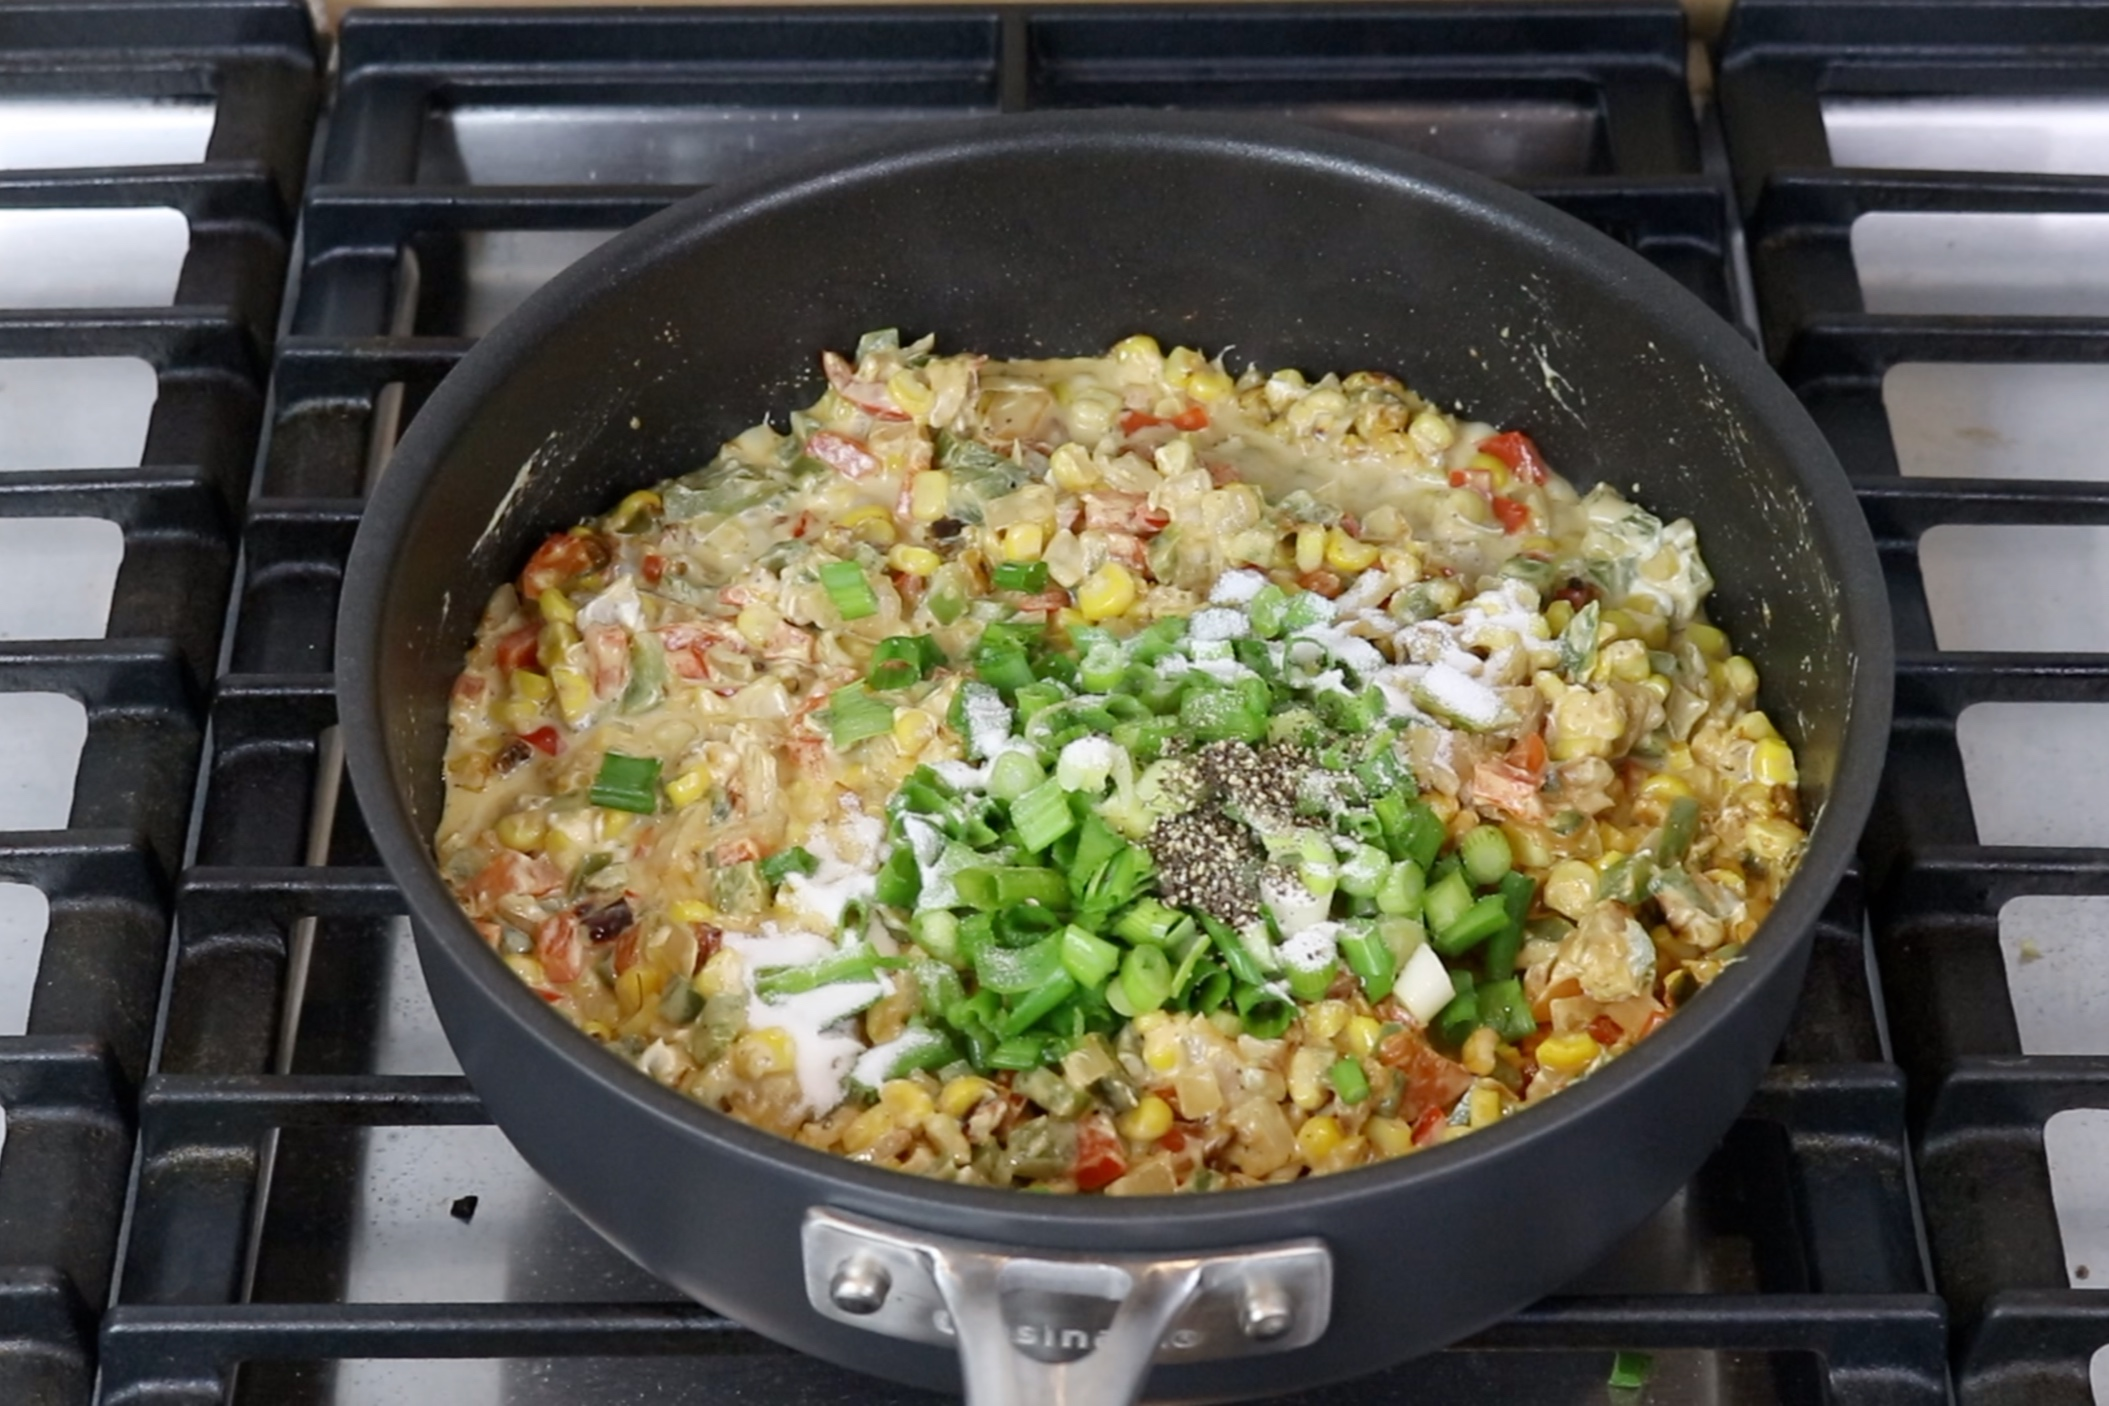 9. Remove from heat and add green onions, salt and pepper. Stir until combined. -